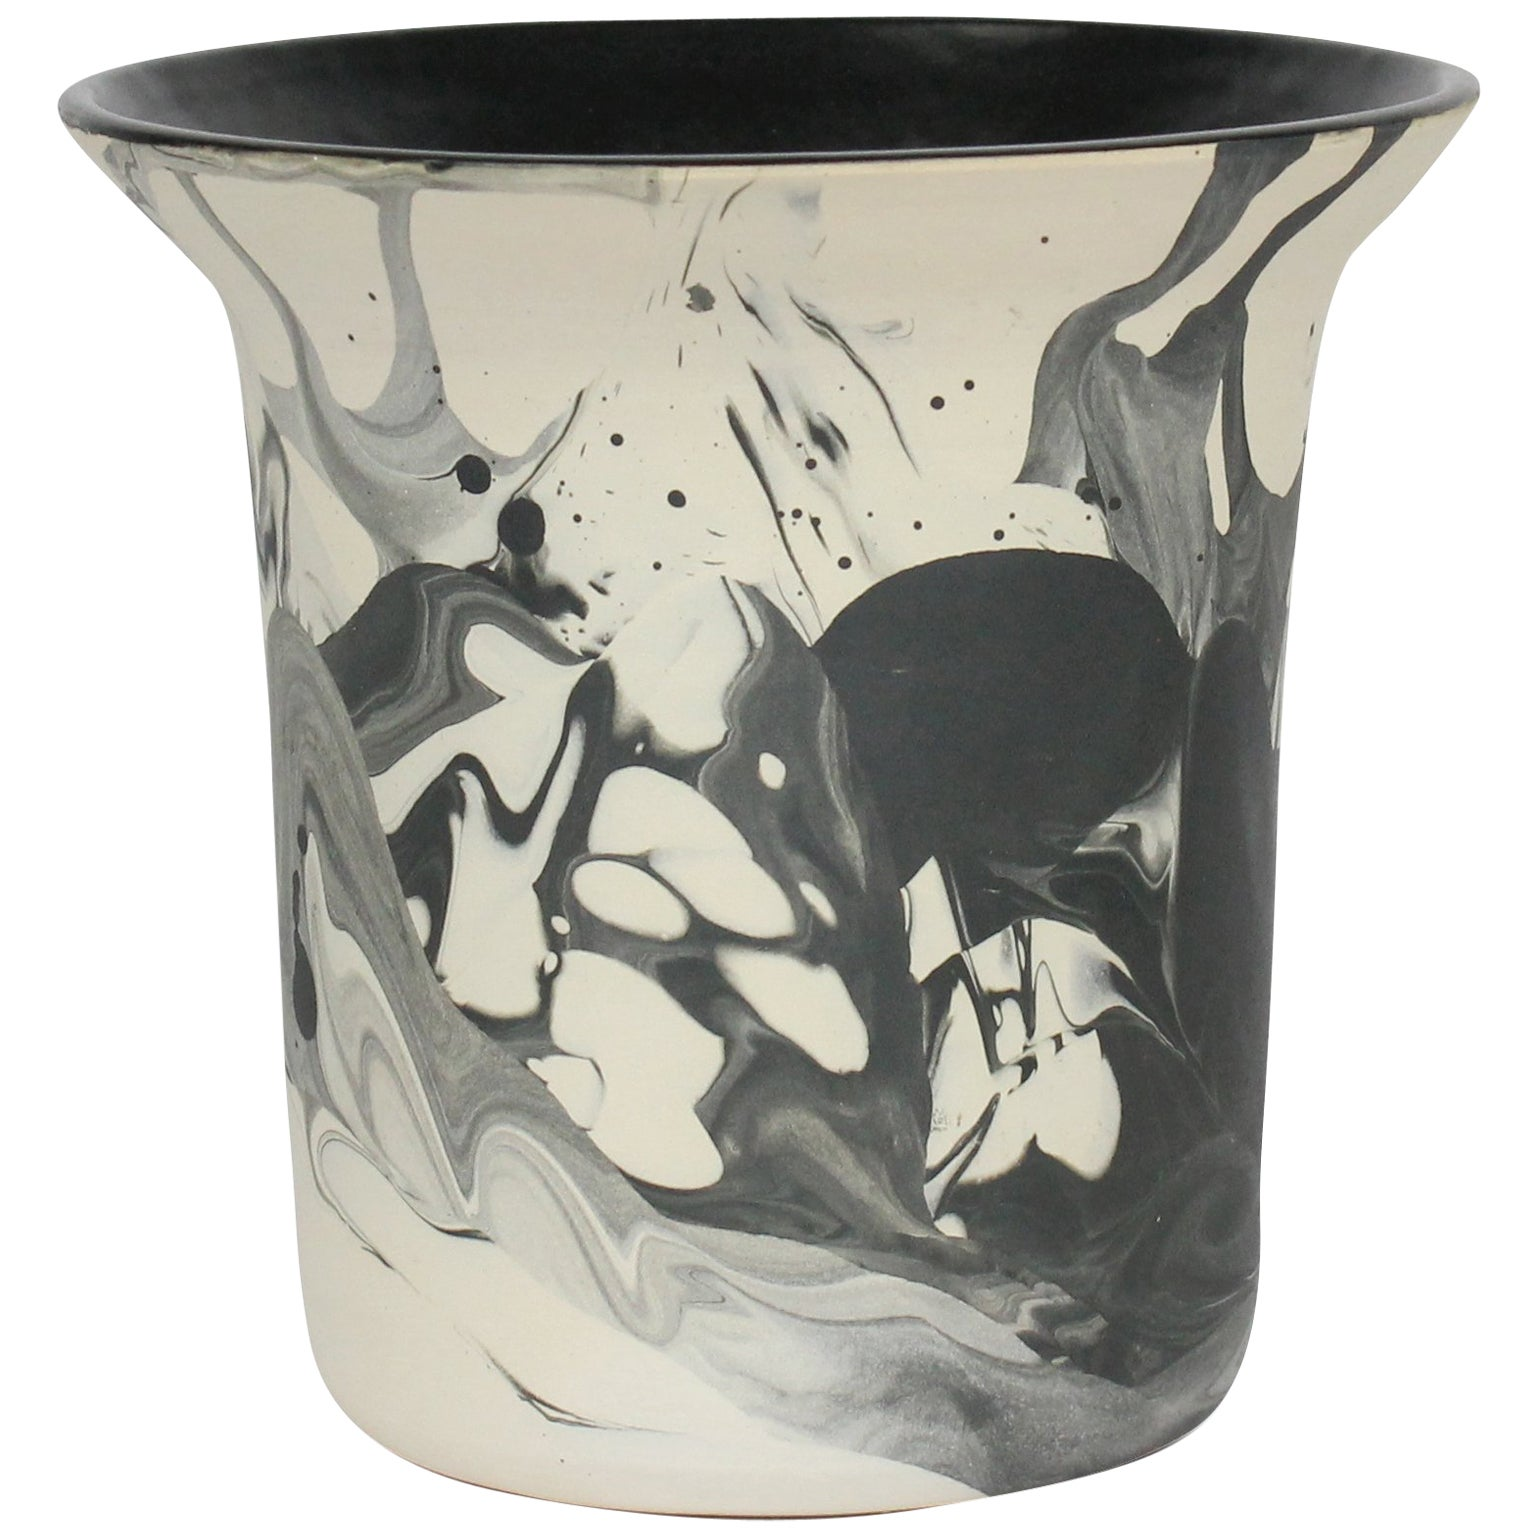 Contemporary Marbled Ceramic Vase in Black and White Raw Clay and Glaze Handmade